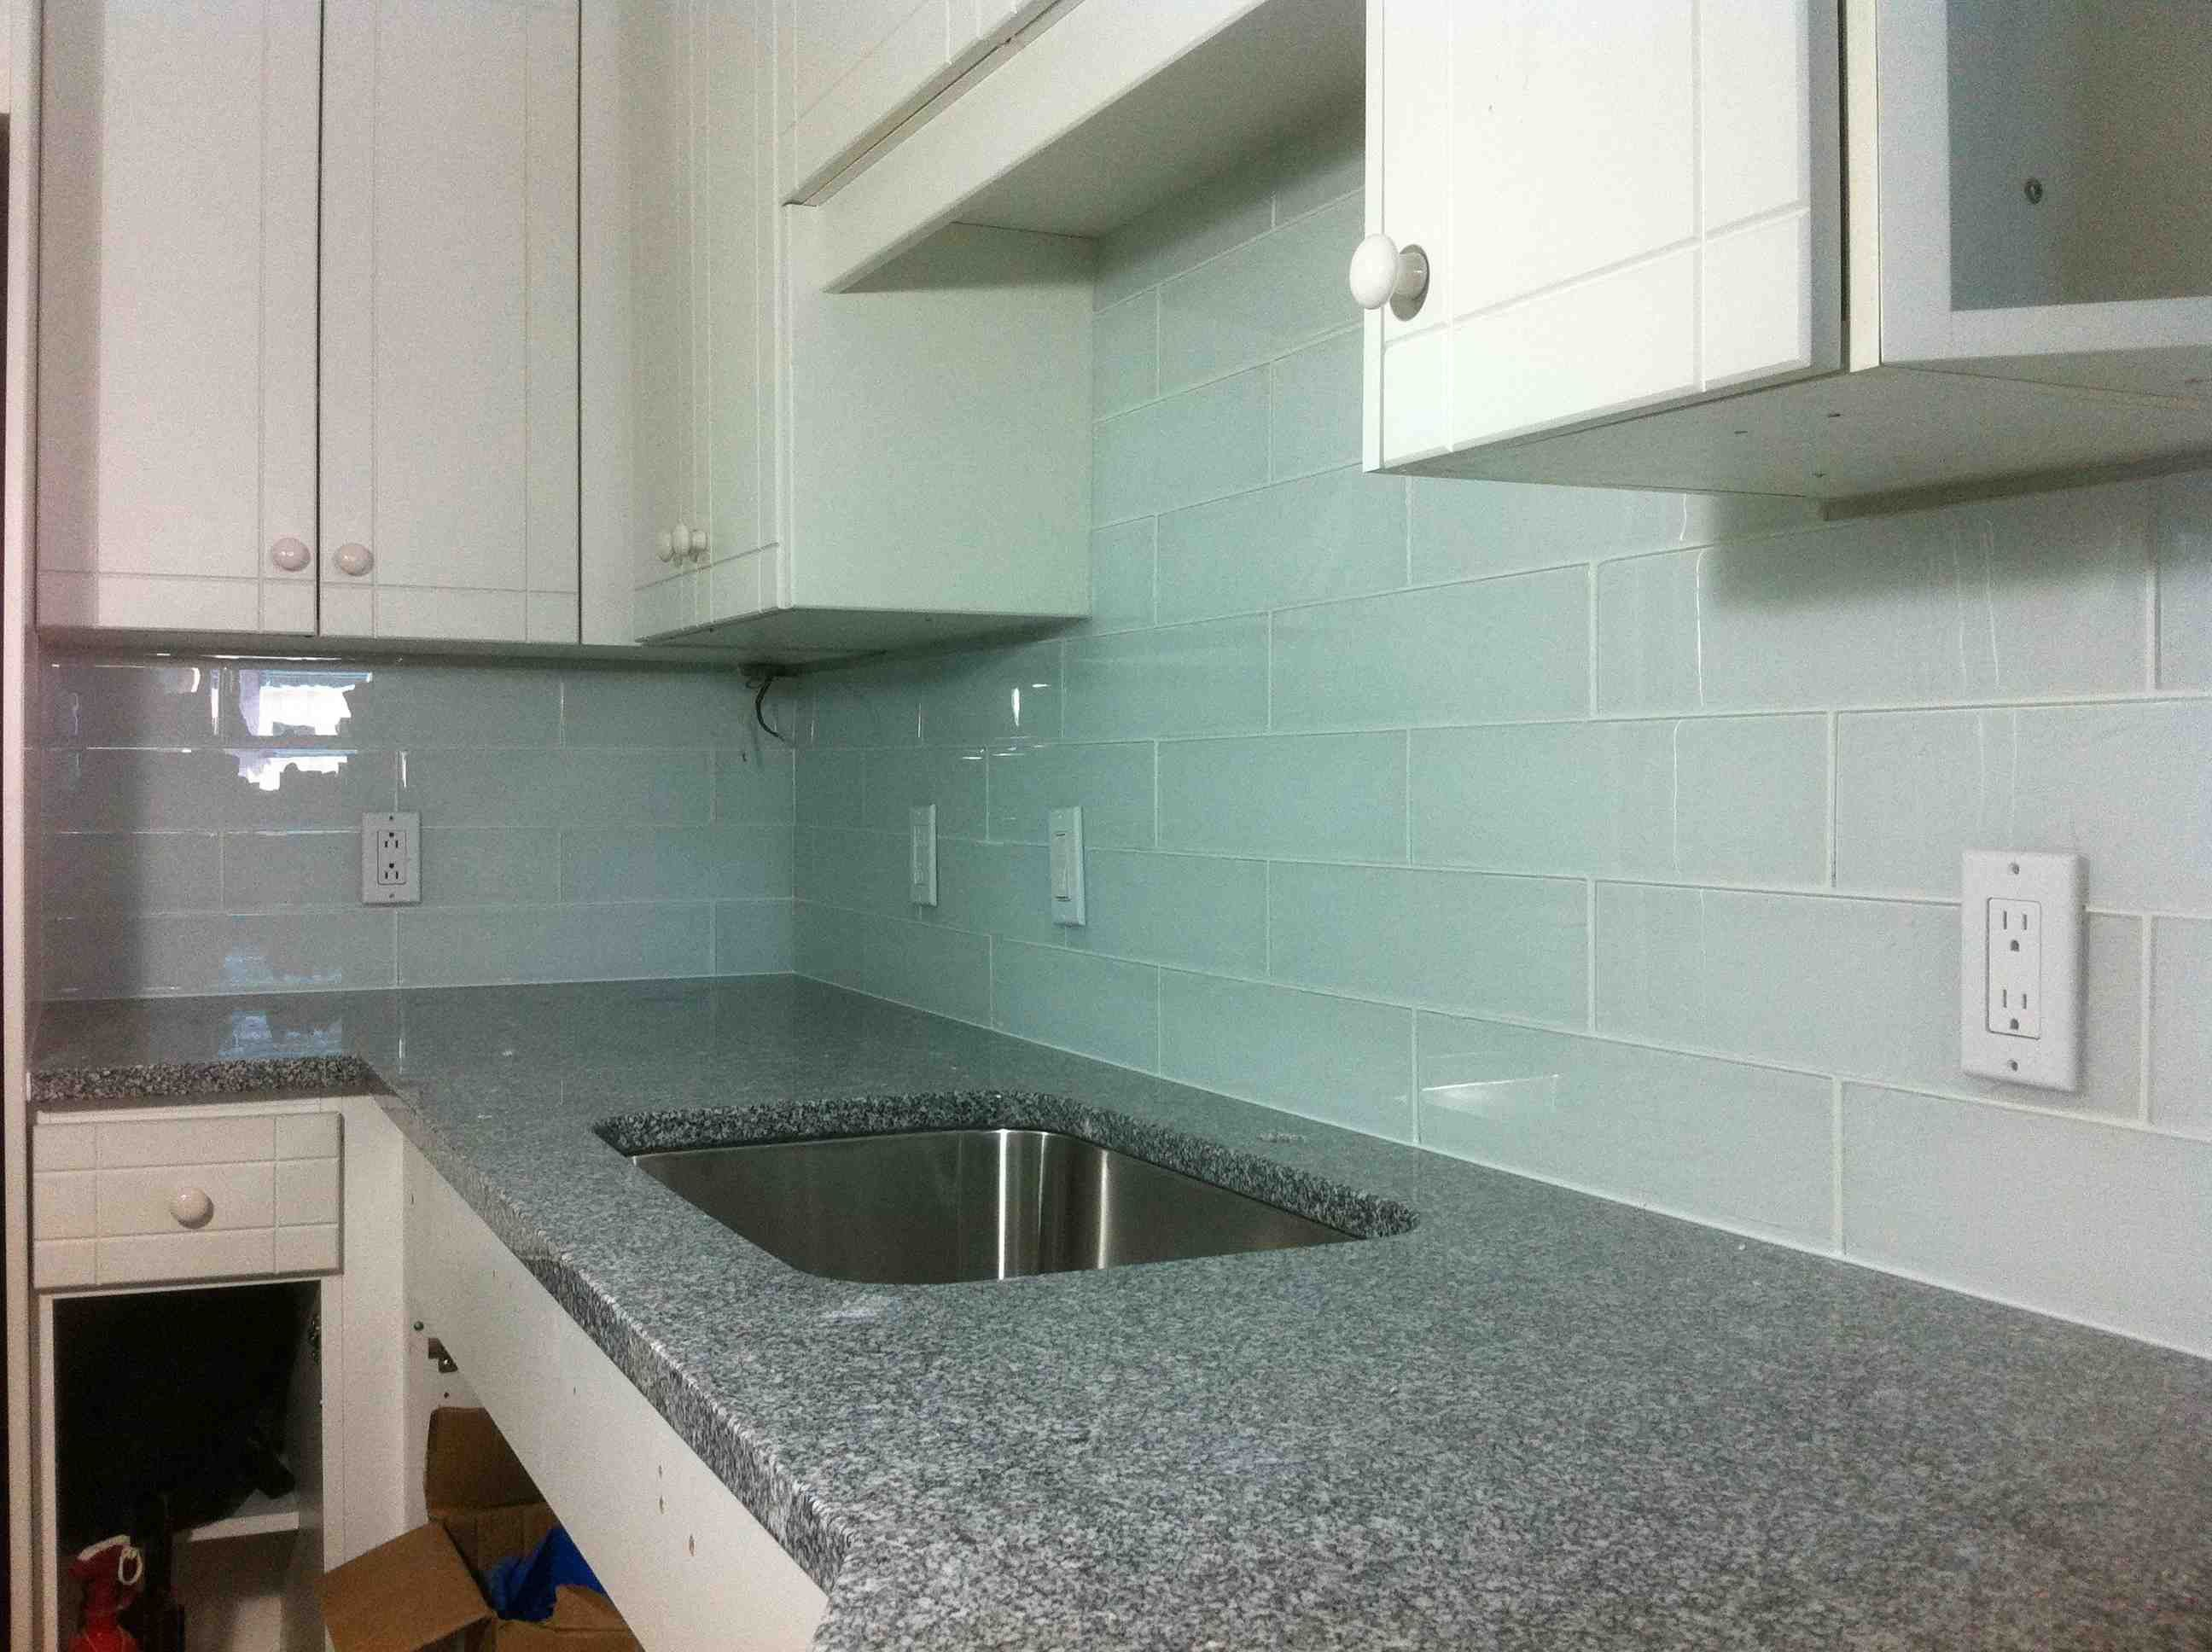 glass kitchen backsplash Bathroom Kitchen Modern Glass Subway Tile Backsplash For Kitchen Designs Glass Subway Tile Backsplash